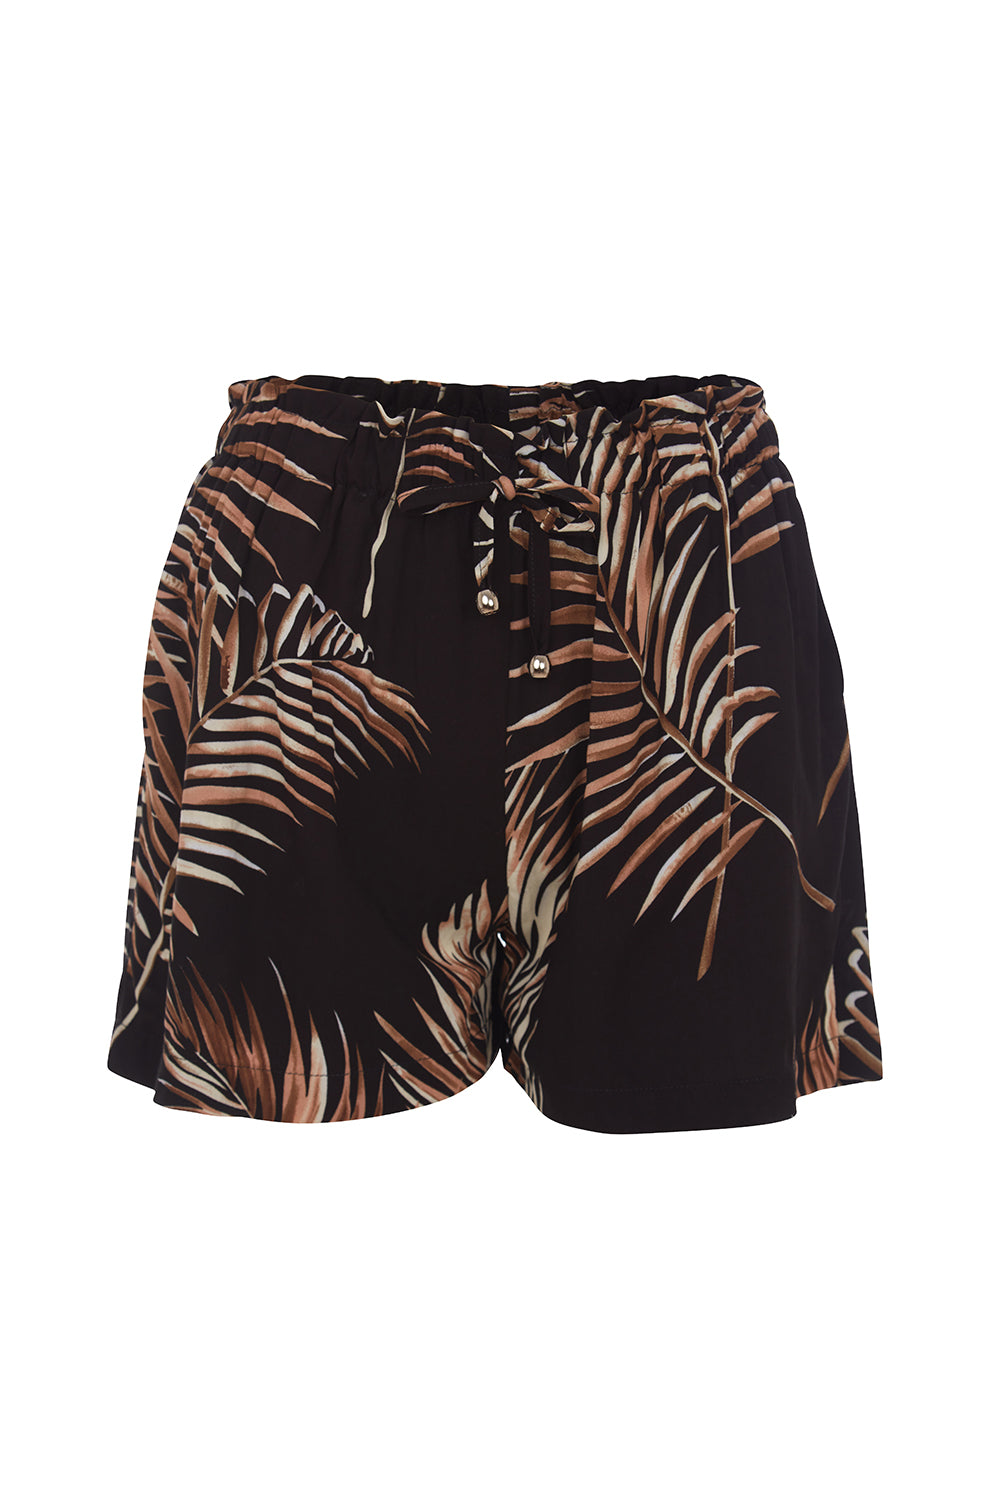 Shorts - Fern Black